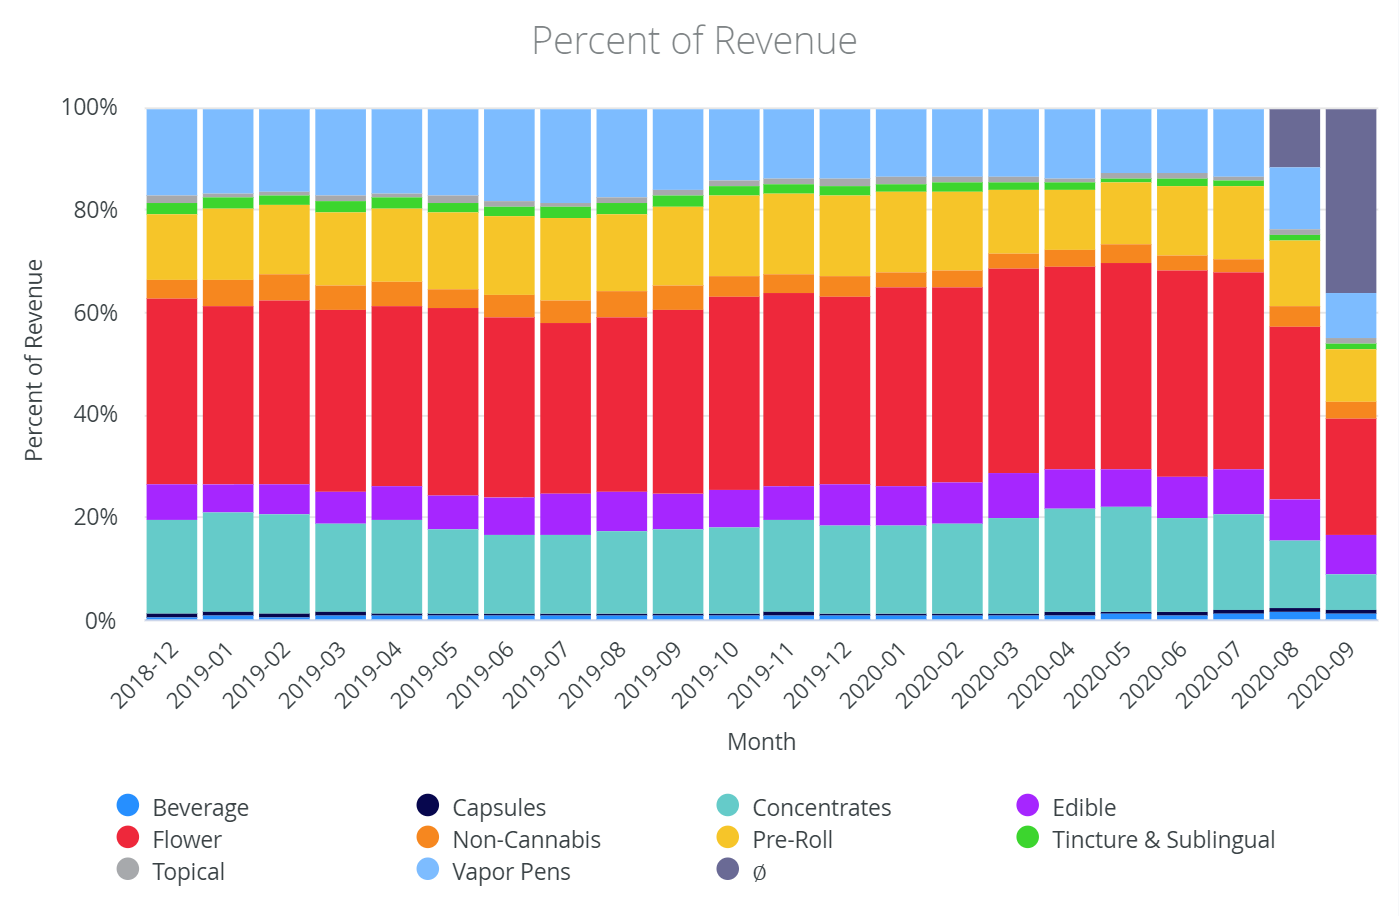 How to manage a dispensary: percent revenue by product category